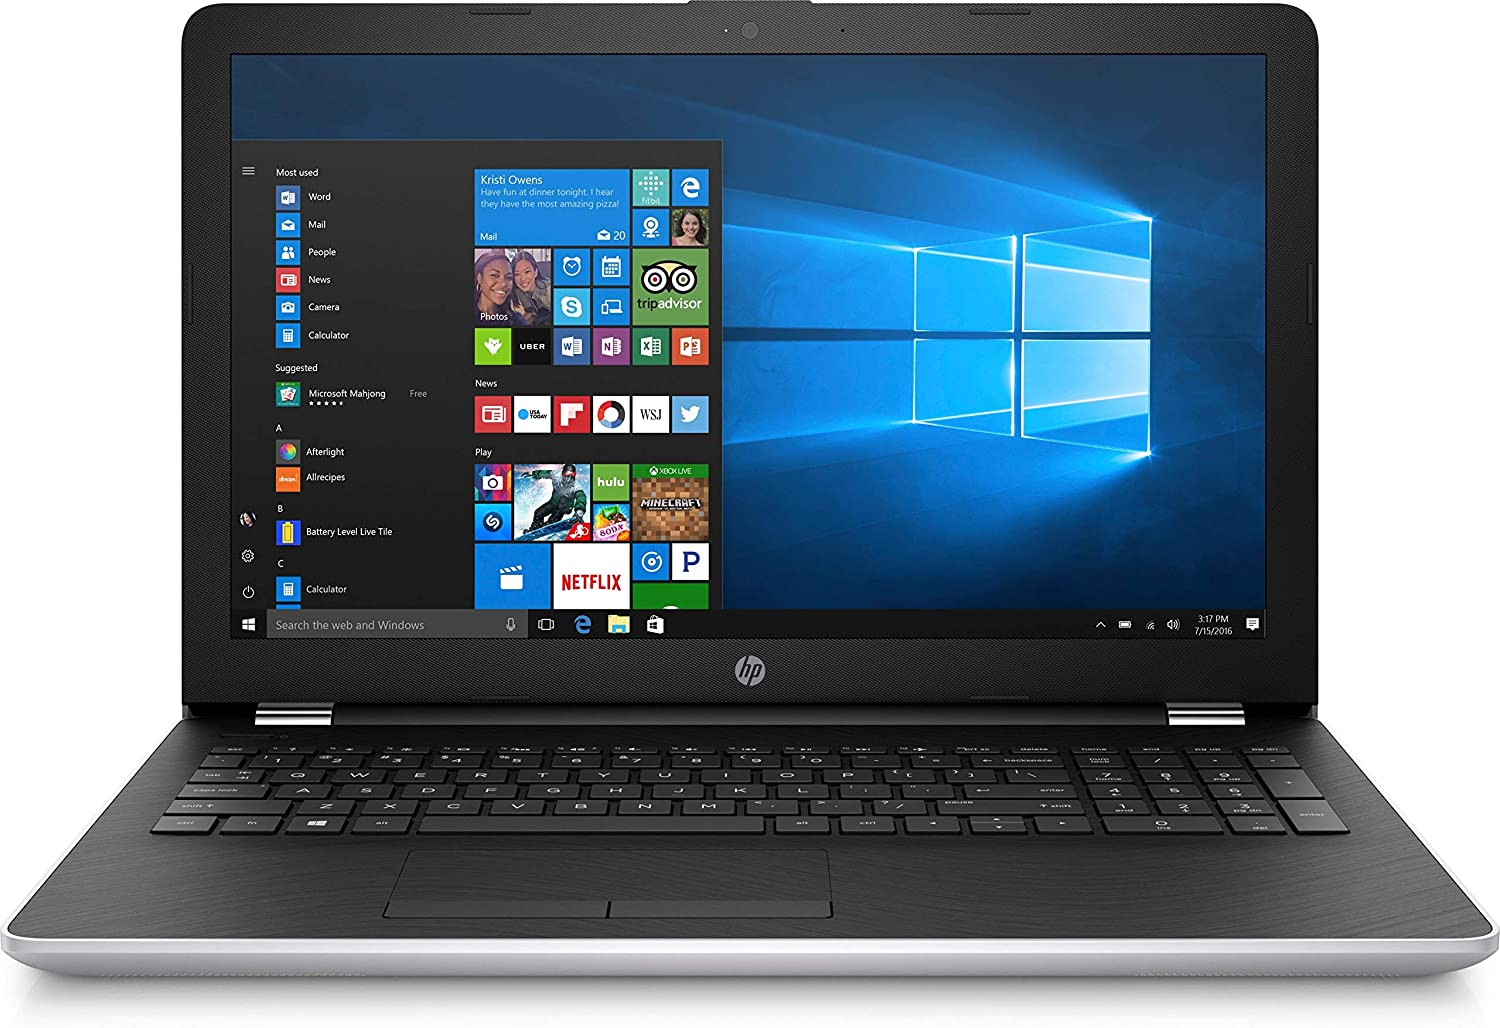 "HP 15.6"" HD Intel i3-7100U 4GB RAM 1TB HDD USB 3.1 Windows 10 Silver Laptop Computer"